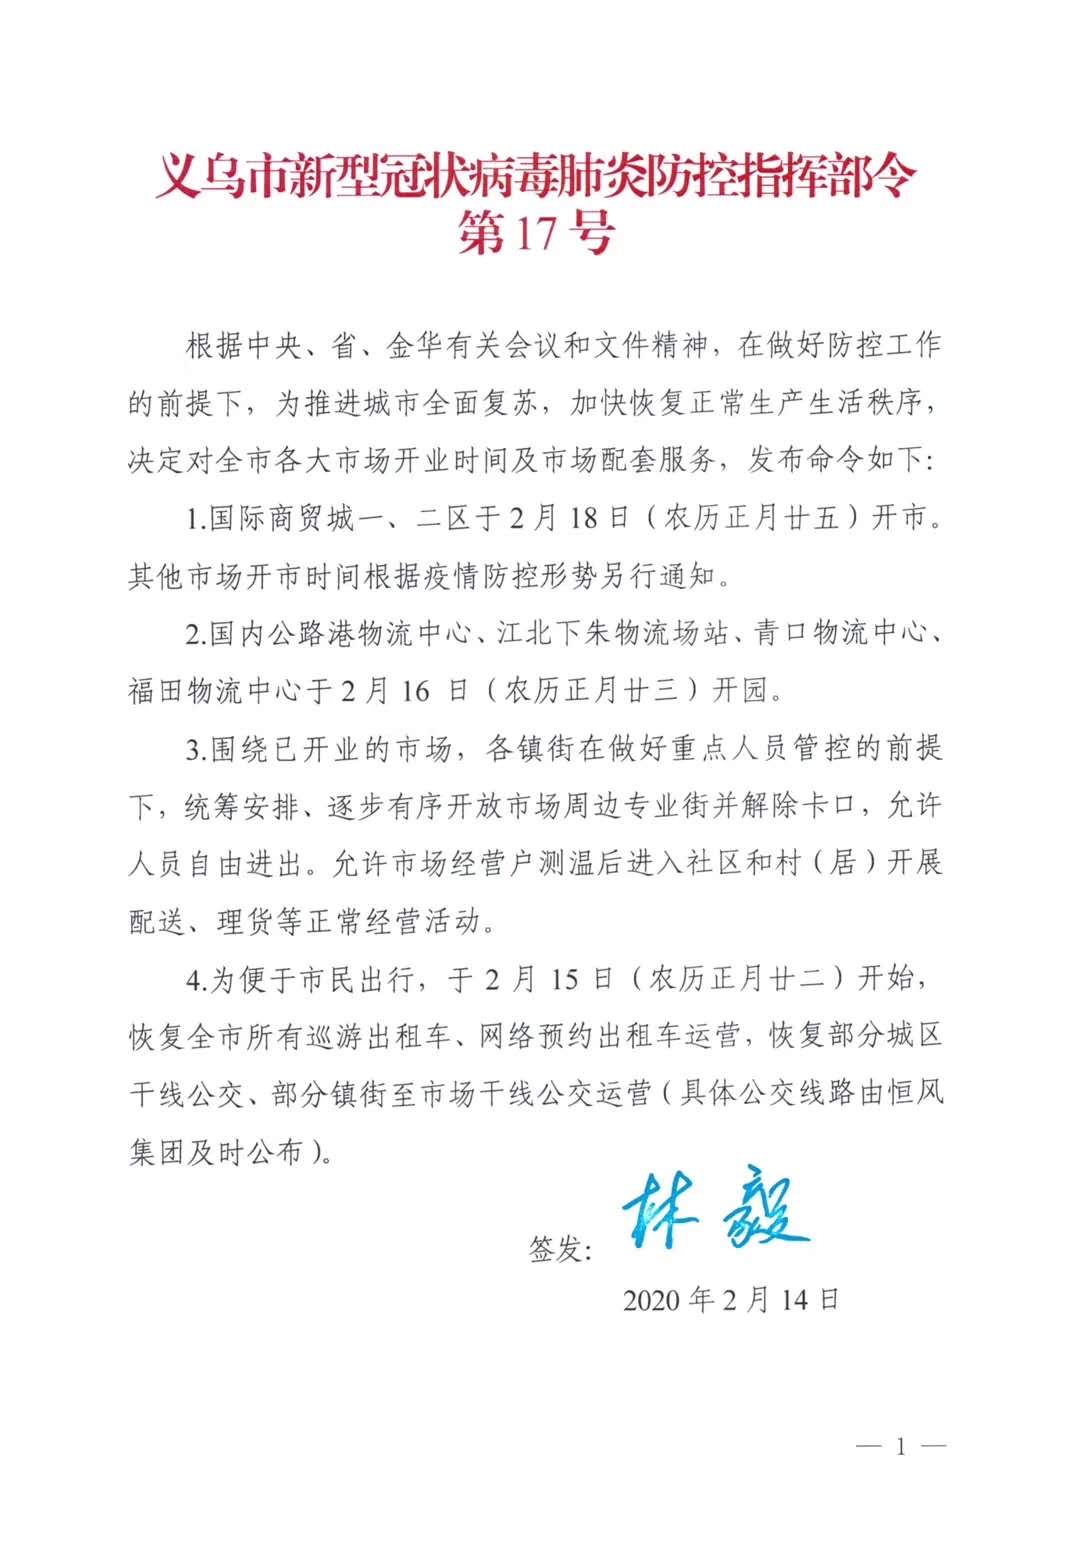 Yiwu Market (District 1&2) Will Be Open On Feb. 18 After Coronavirus